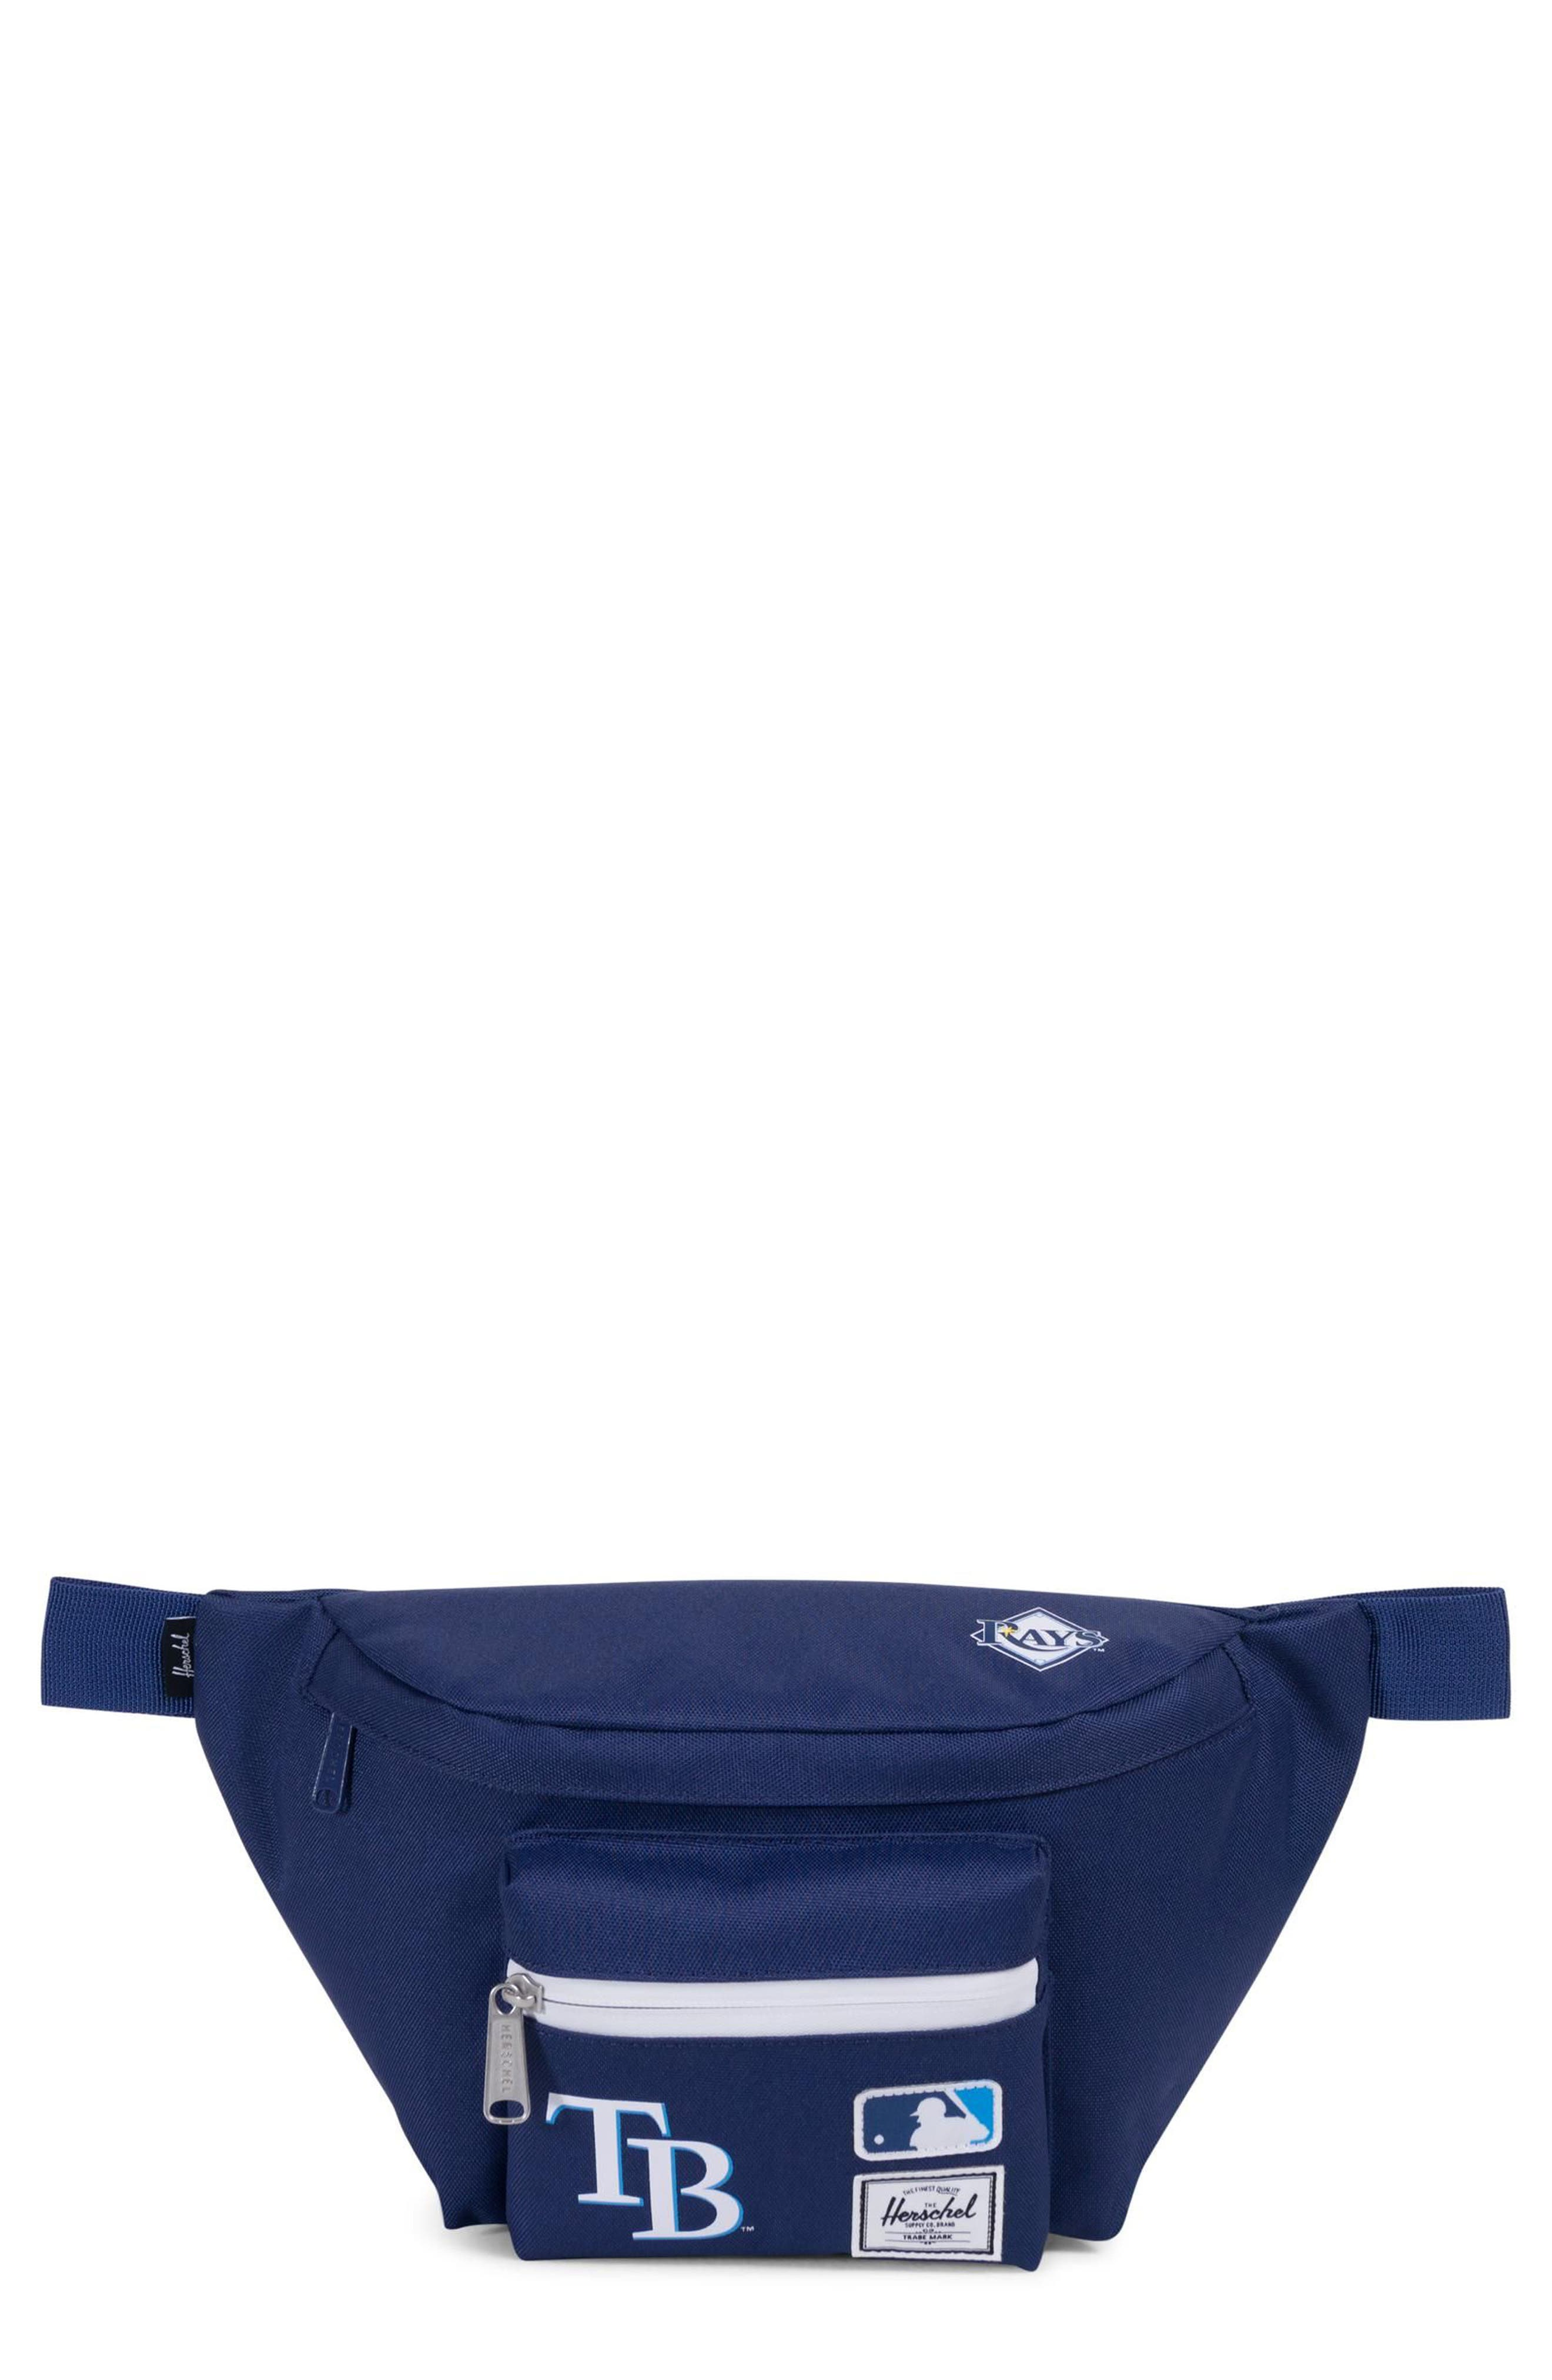 MLB American League Hip Pack,                         Main,                         color, Tampa Bay Rays